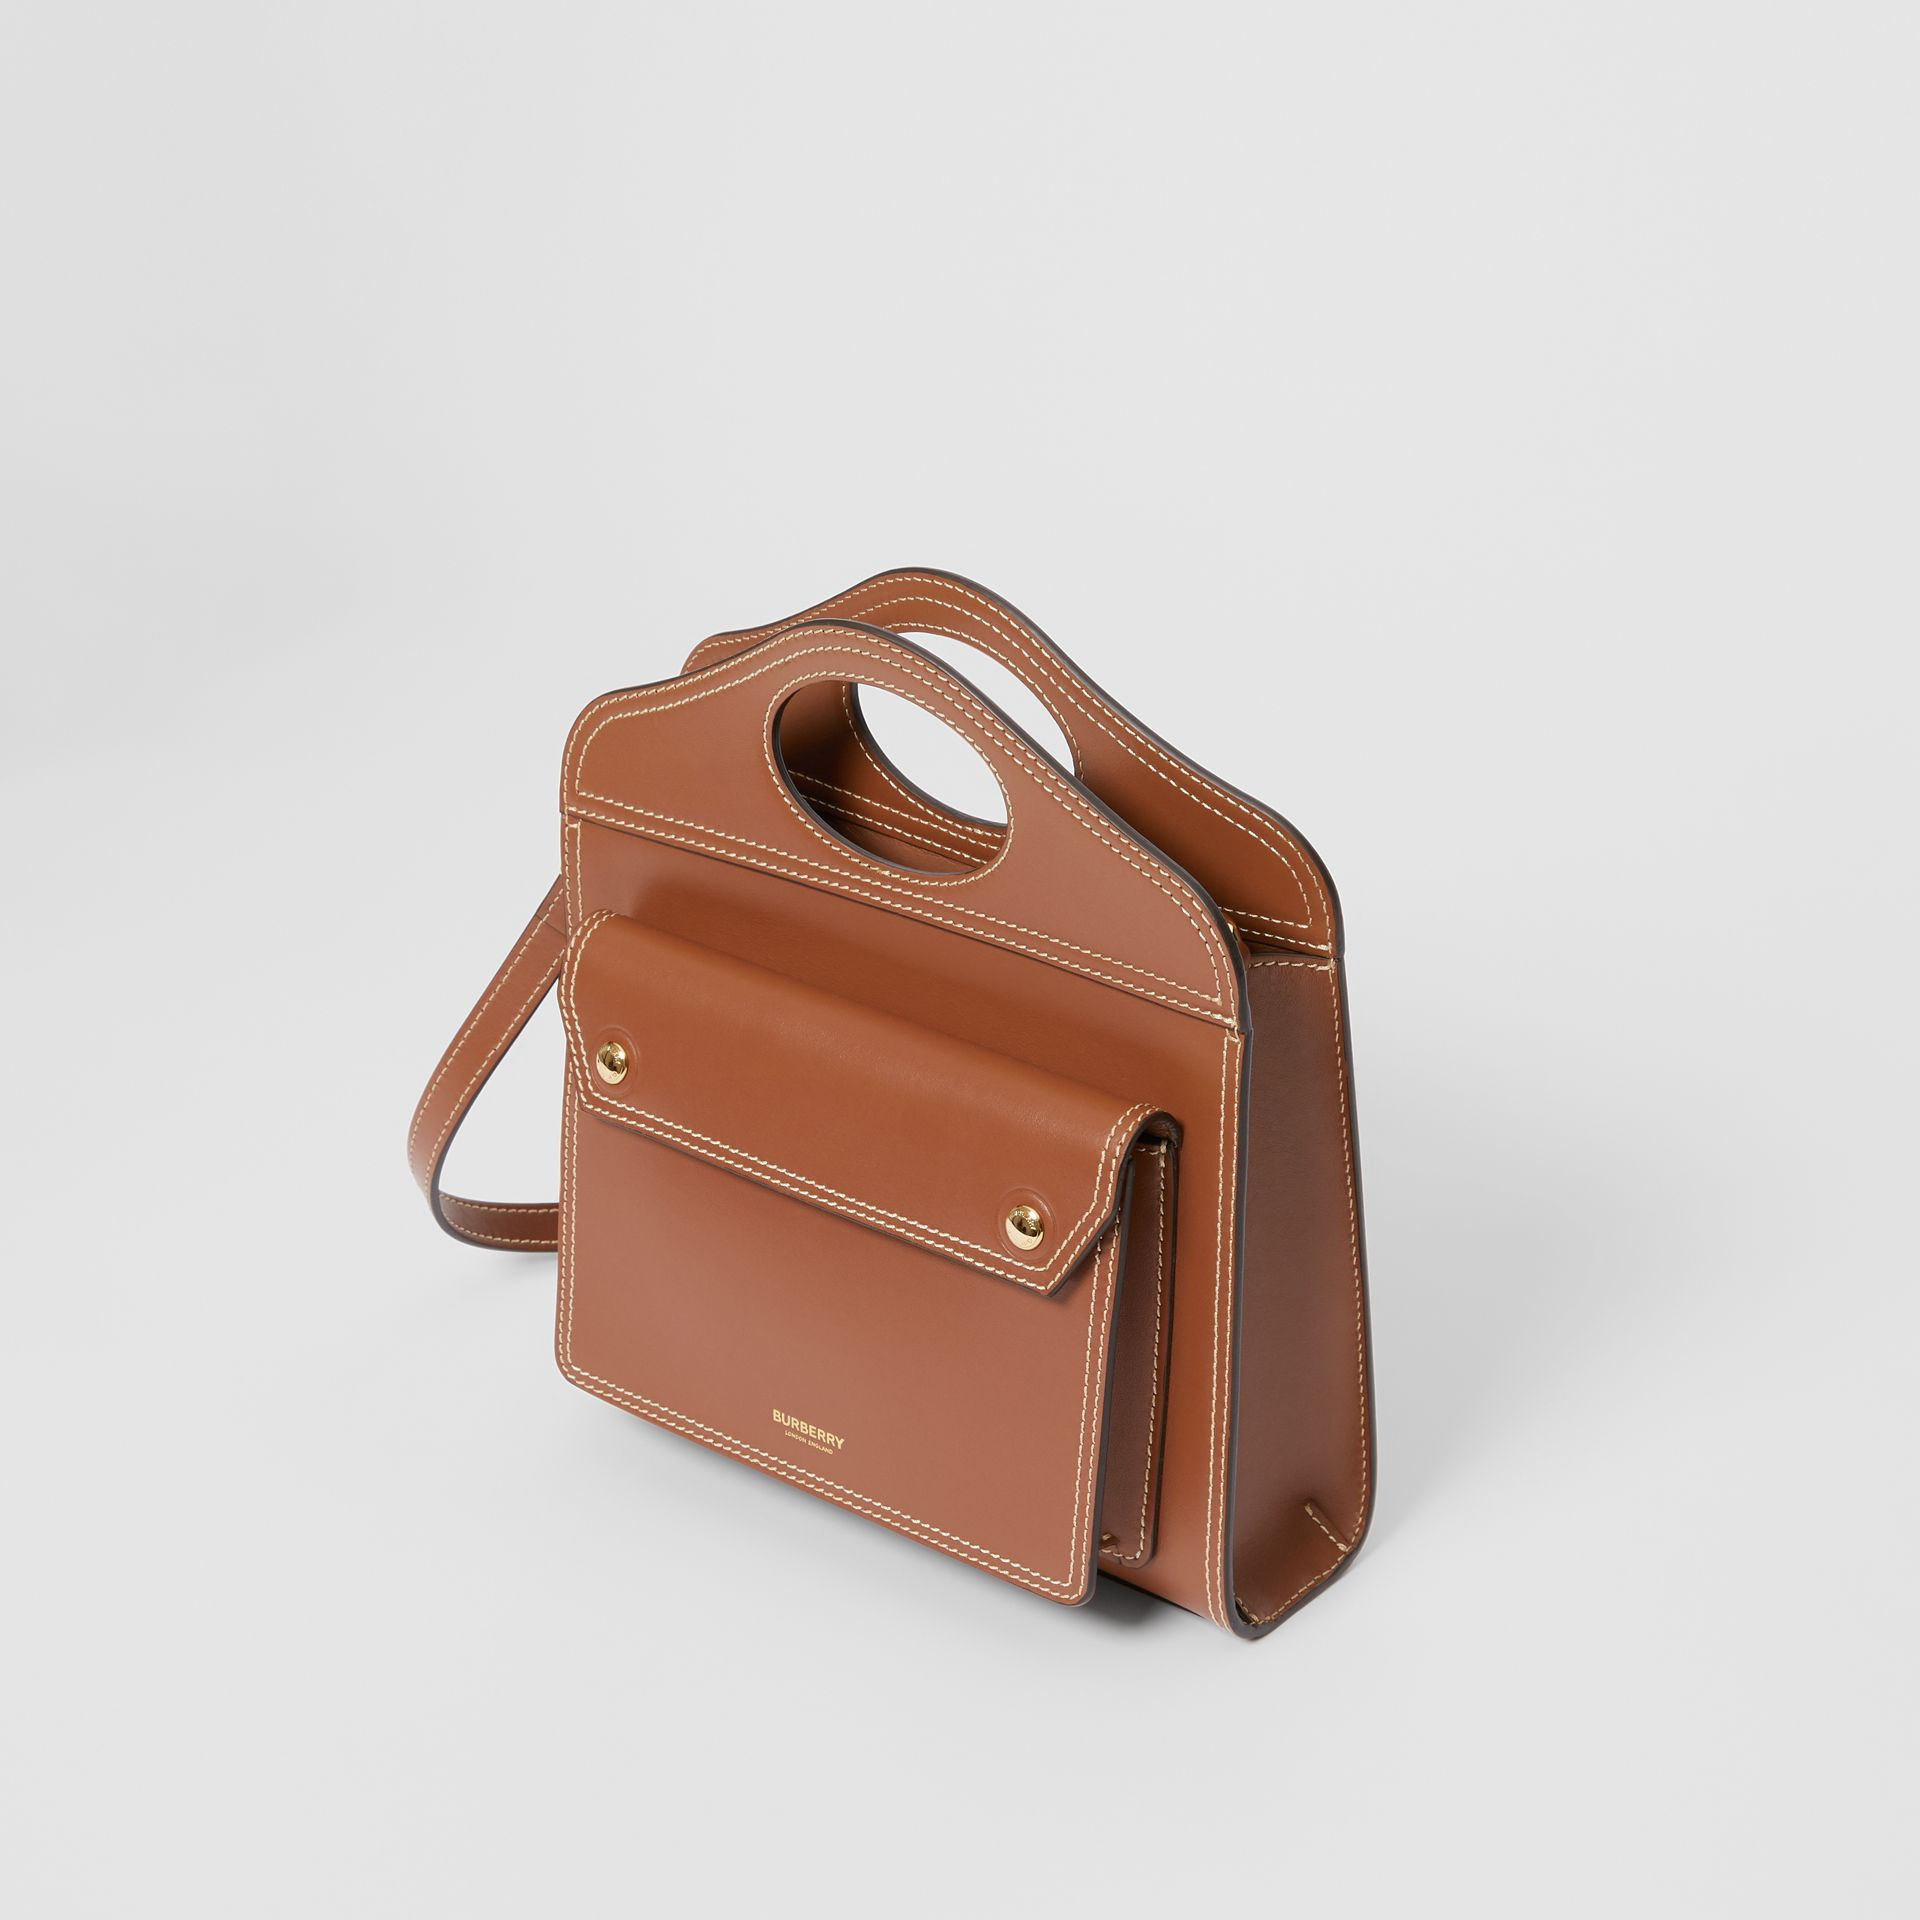 Mini Topstitched Leather Pocket Bag in Malt Brown - Women | Burberry - gallery image 3